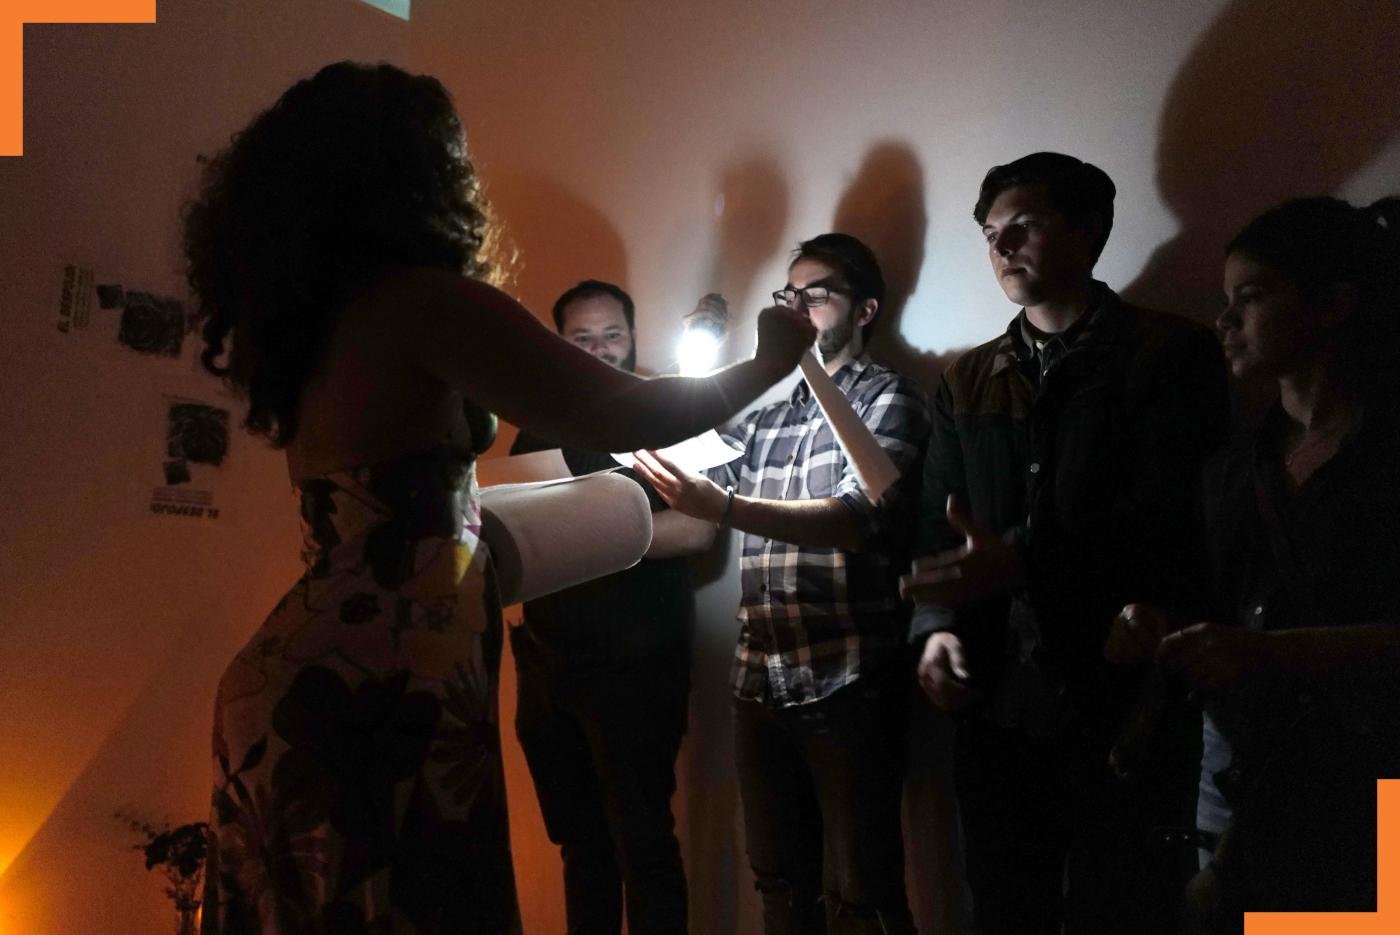 In a dark gallery space, Yara reads from a text, while an audience member holds a flashlight over the document.